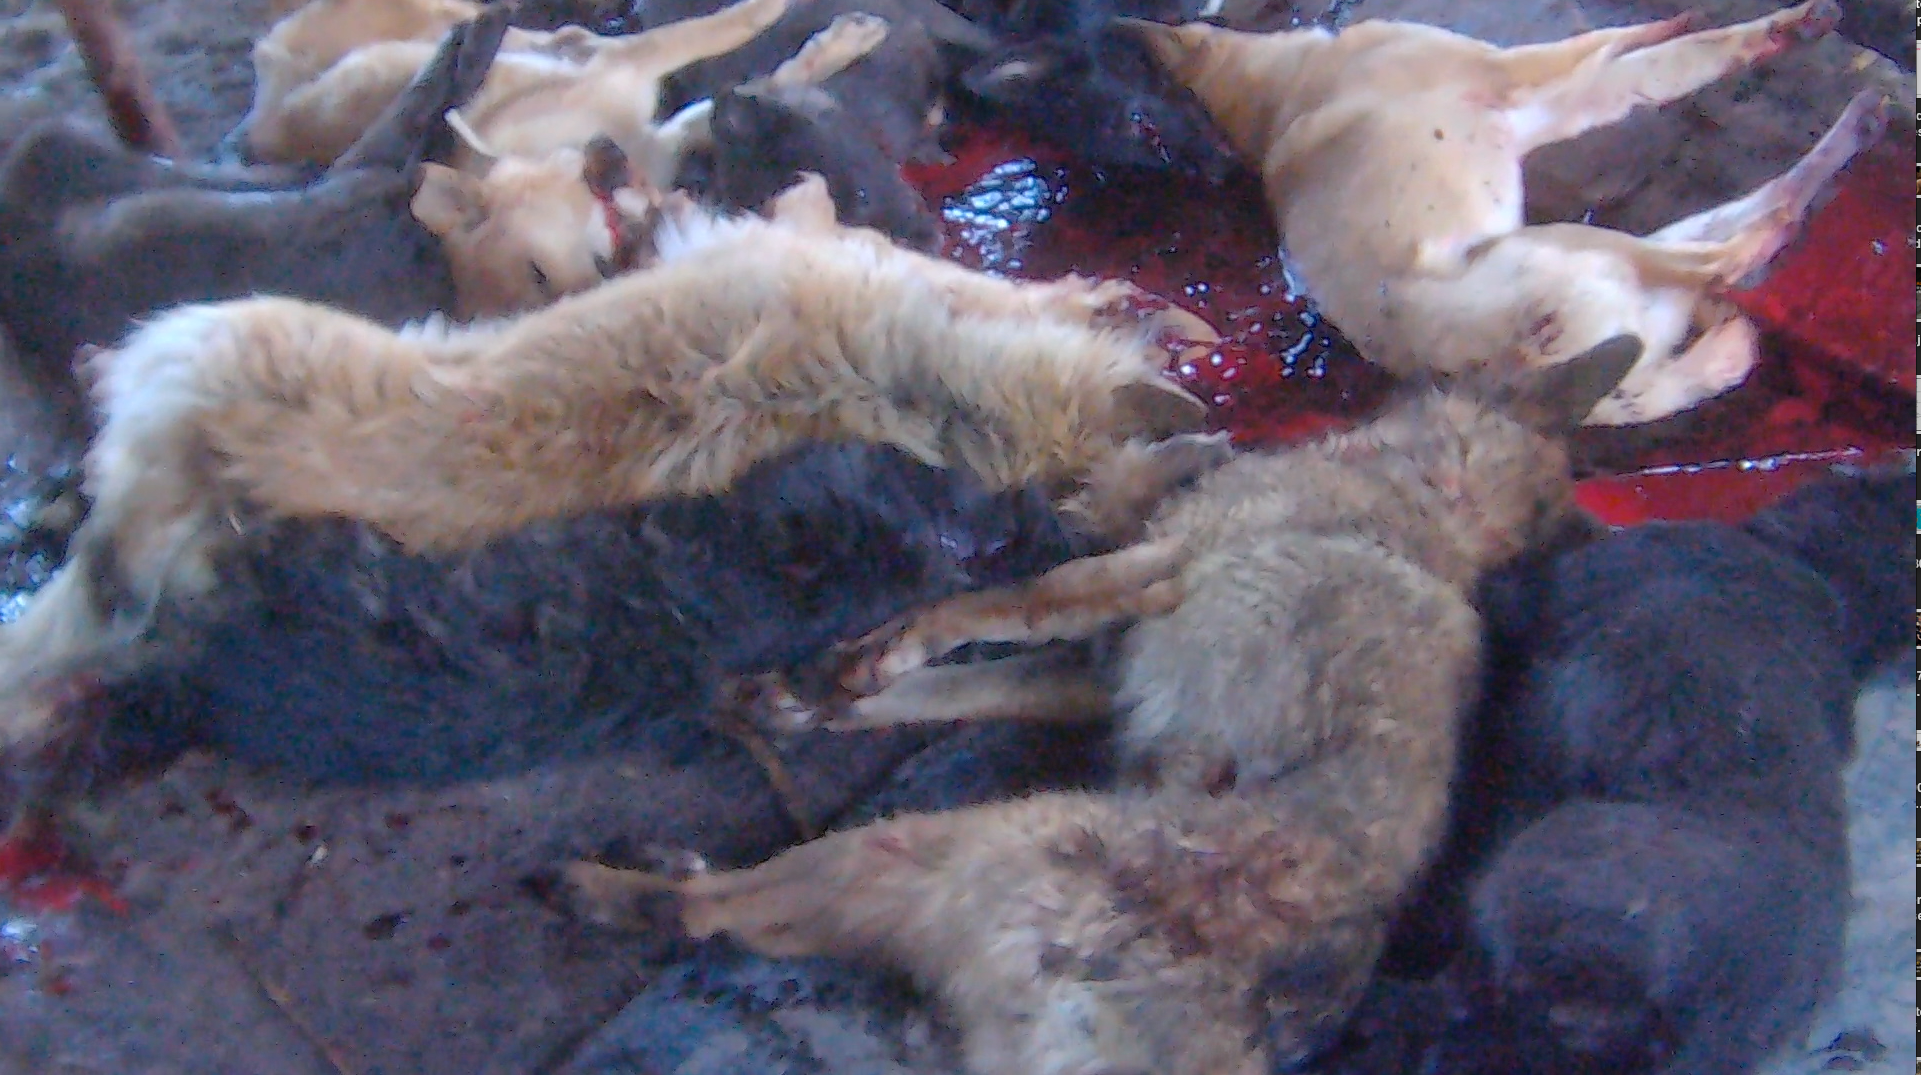 Sign Now to Stop Dog Meat - photo#4